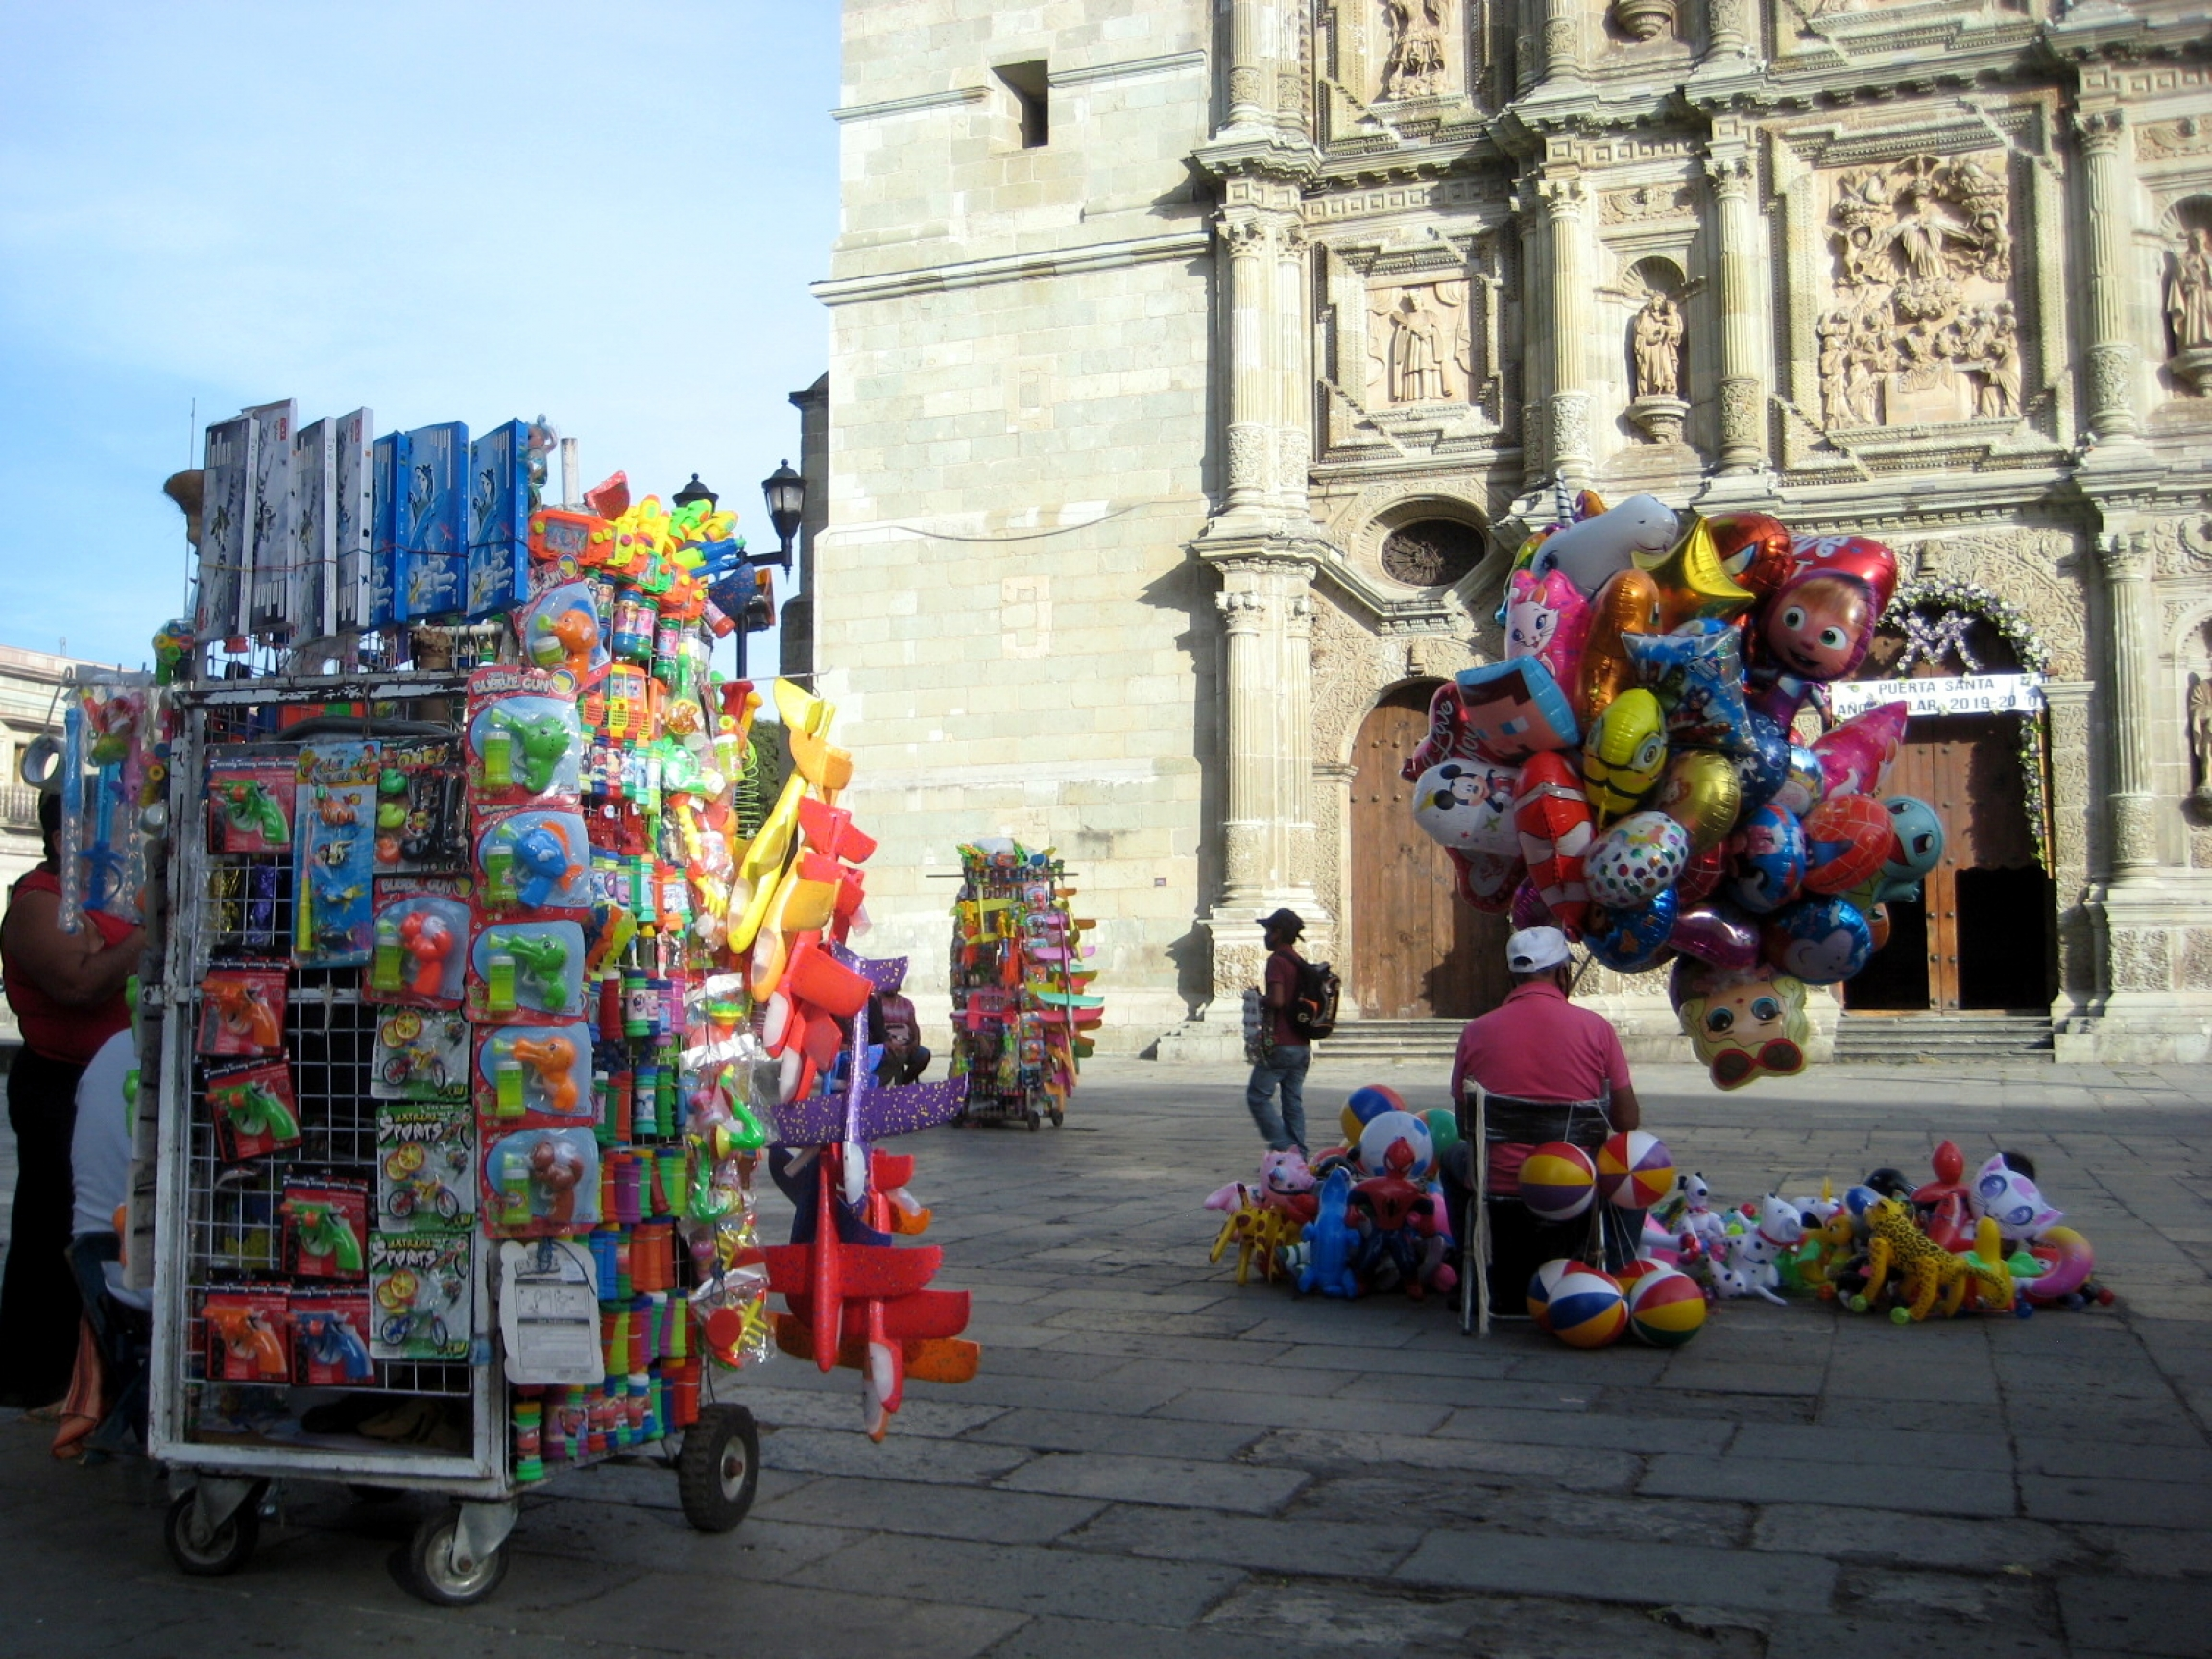 Vendors in front of Oaxaca's landmark cathedral have been outnumbering potential clients these days.